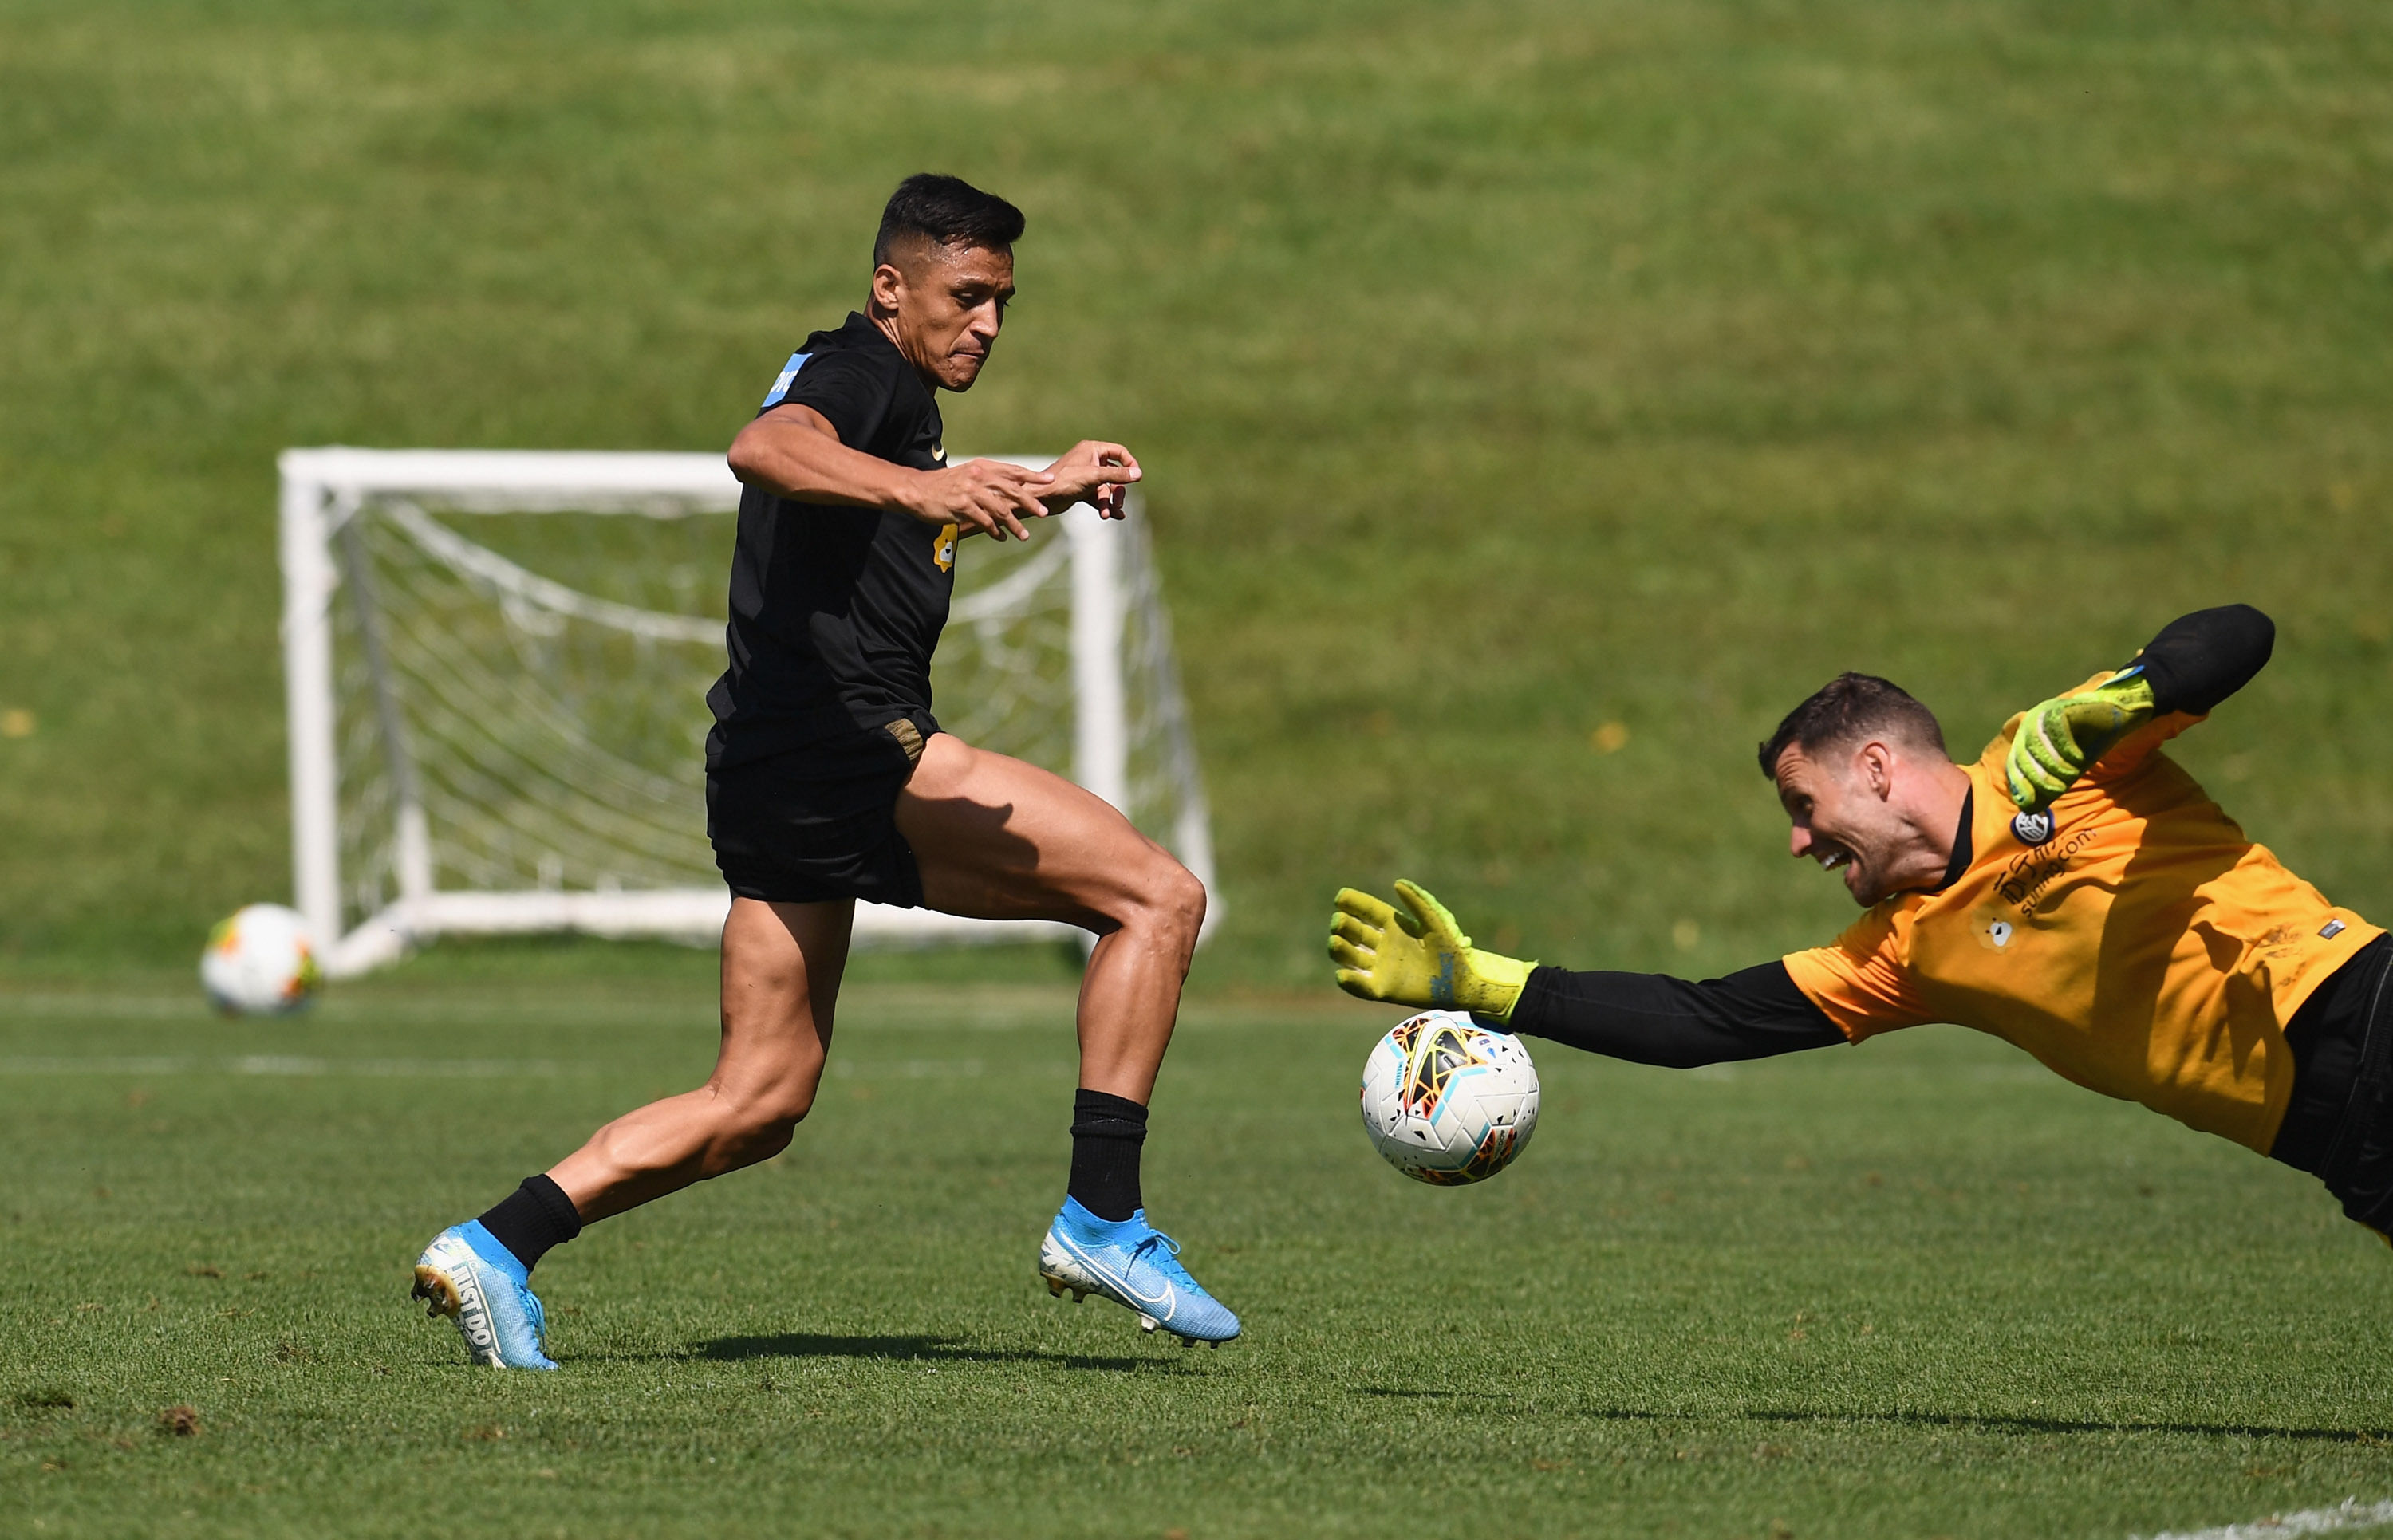 Alexis Sanchez, the first snaps from training